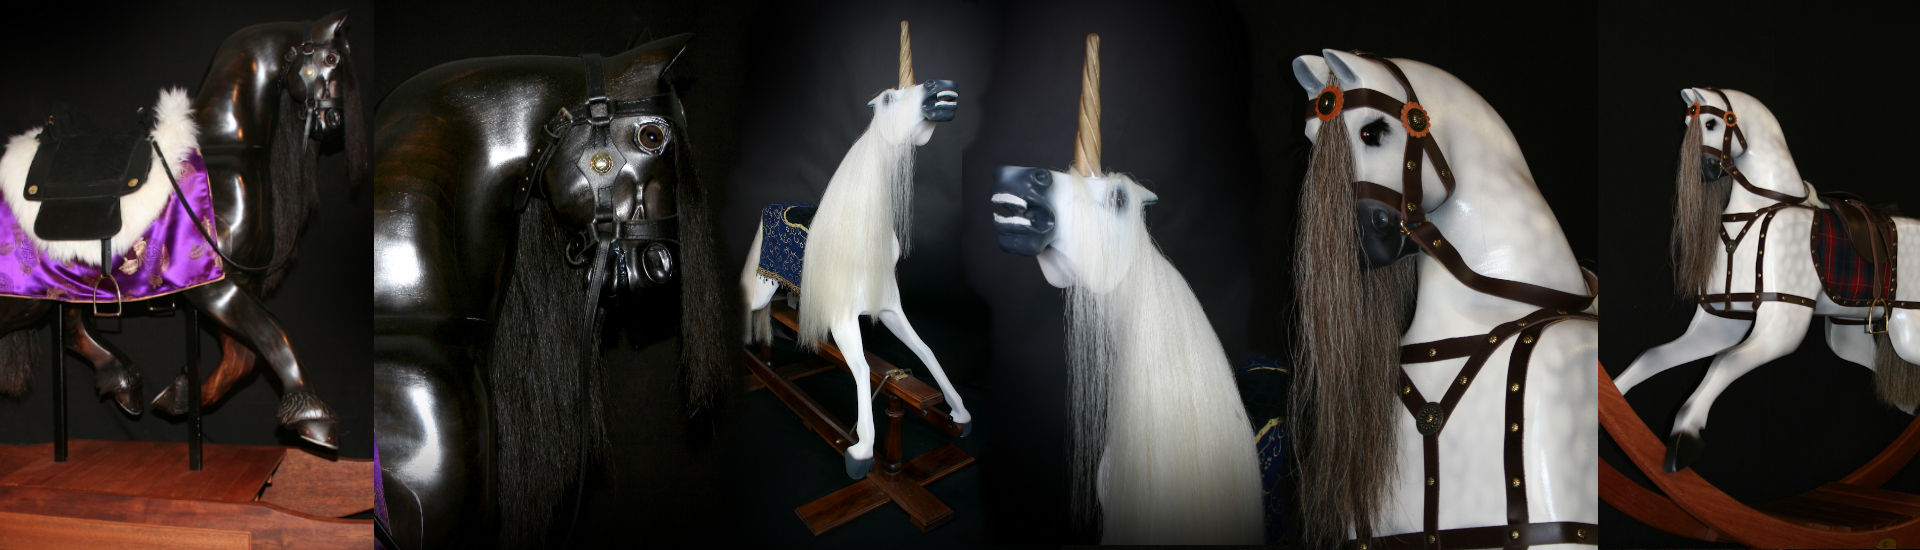 Images of 3 of Delfryn Rocking Horses Custom Horses